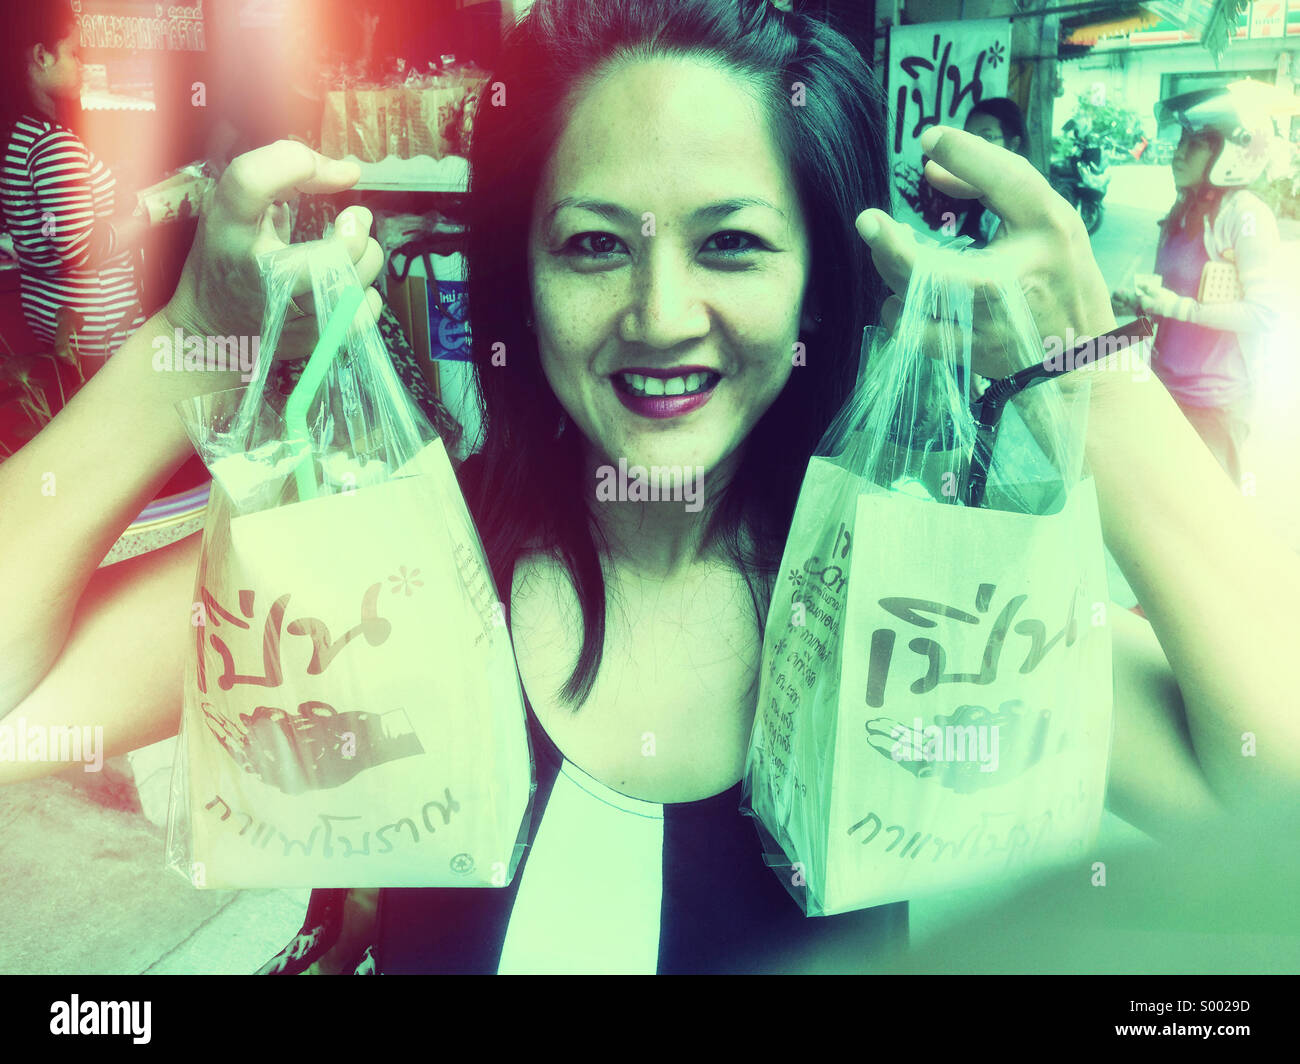 Thailand girl with Thai coffee purchase. - Stock Image